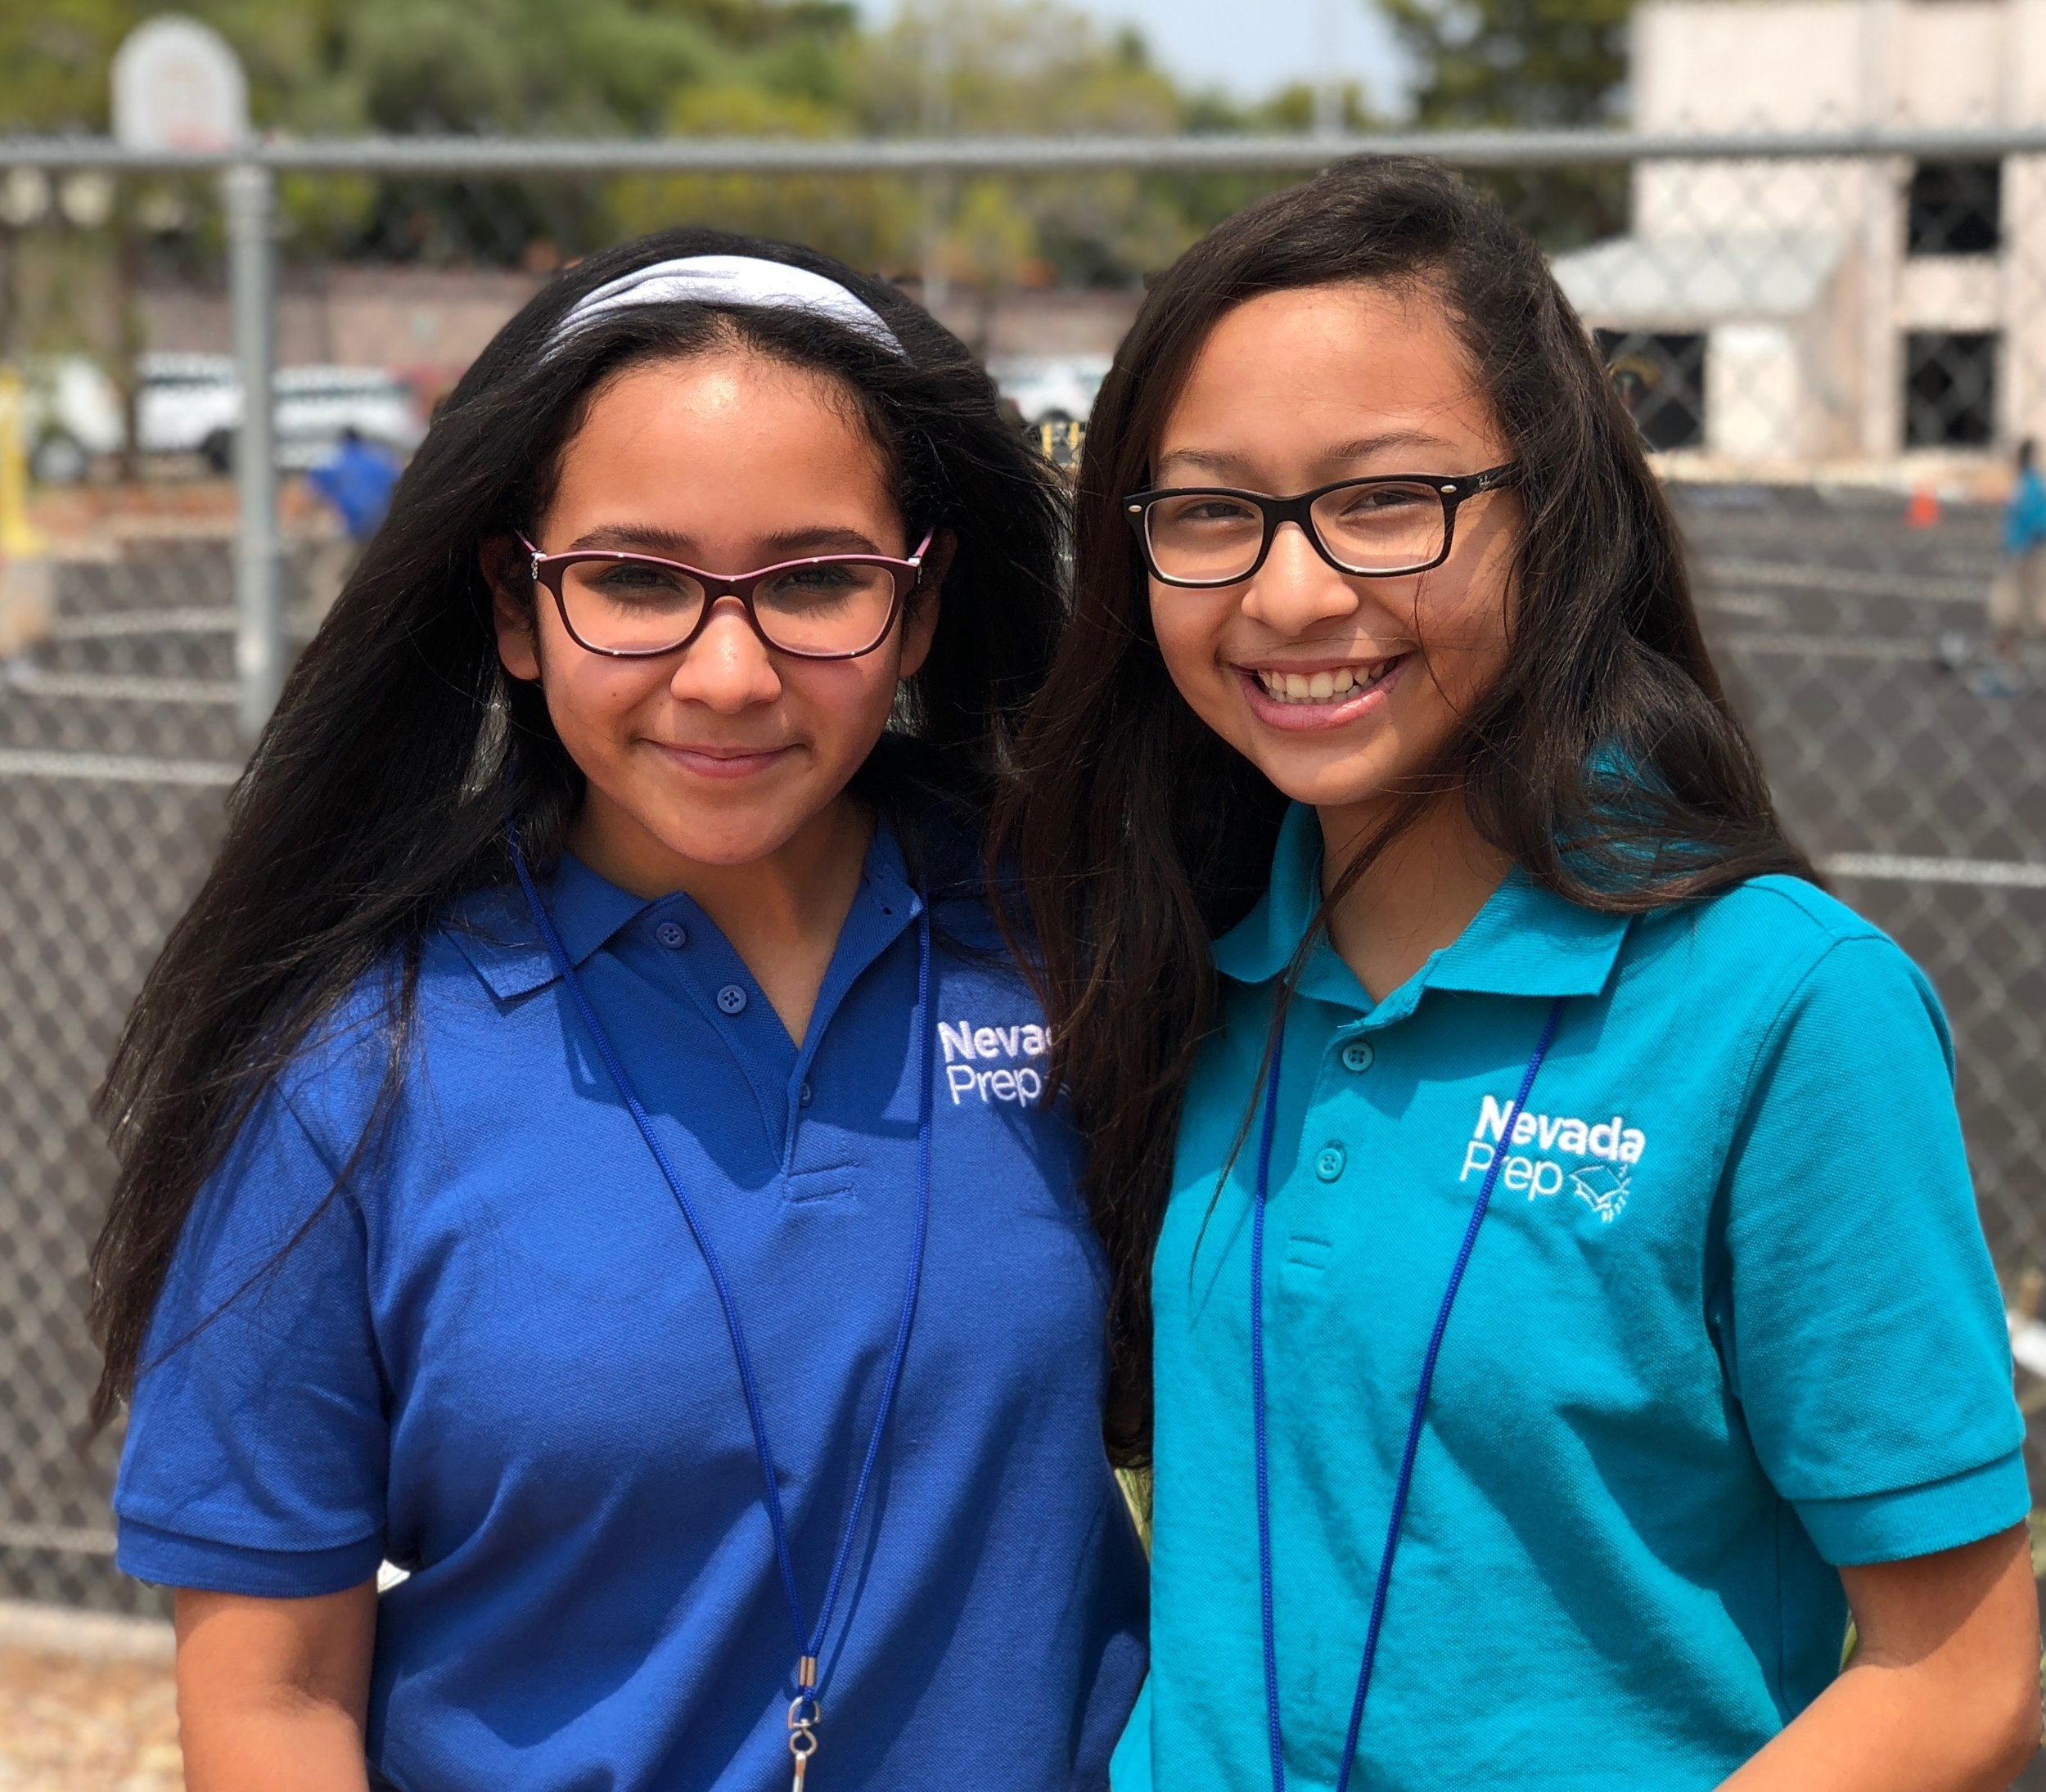 Our Mission - With a focus on academic achievement and leadership development, Nevada Preparatory Charter School (Nevada Prep) educates every fifth- through eighth-grade student for success in high school, college, and life.